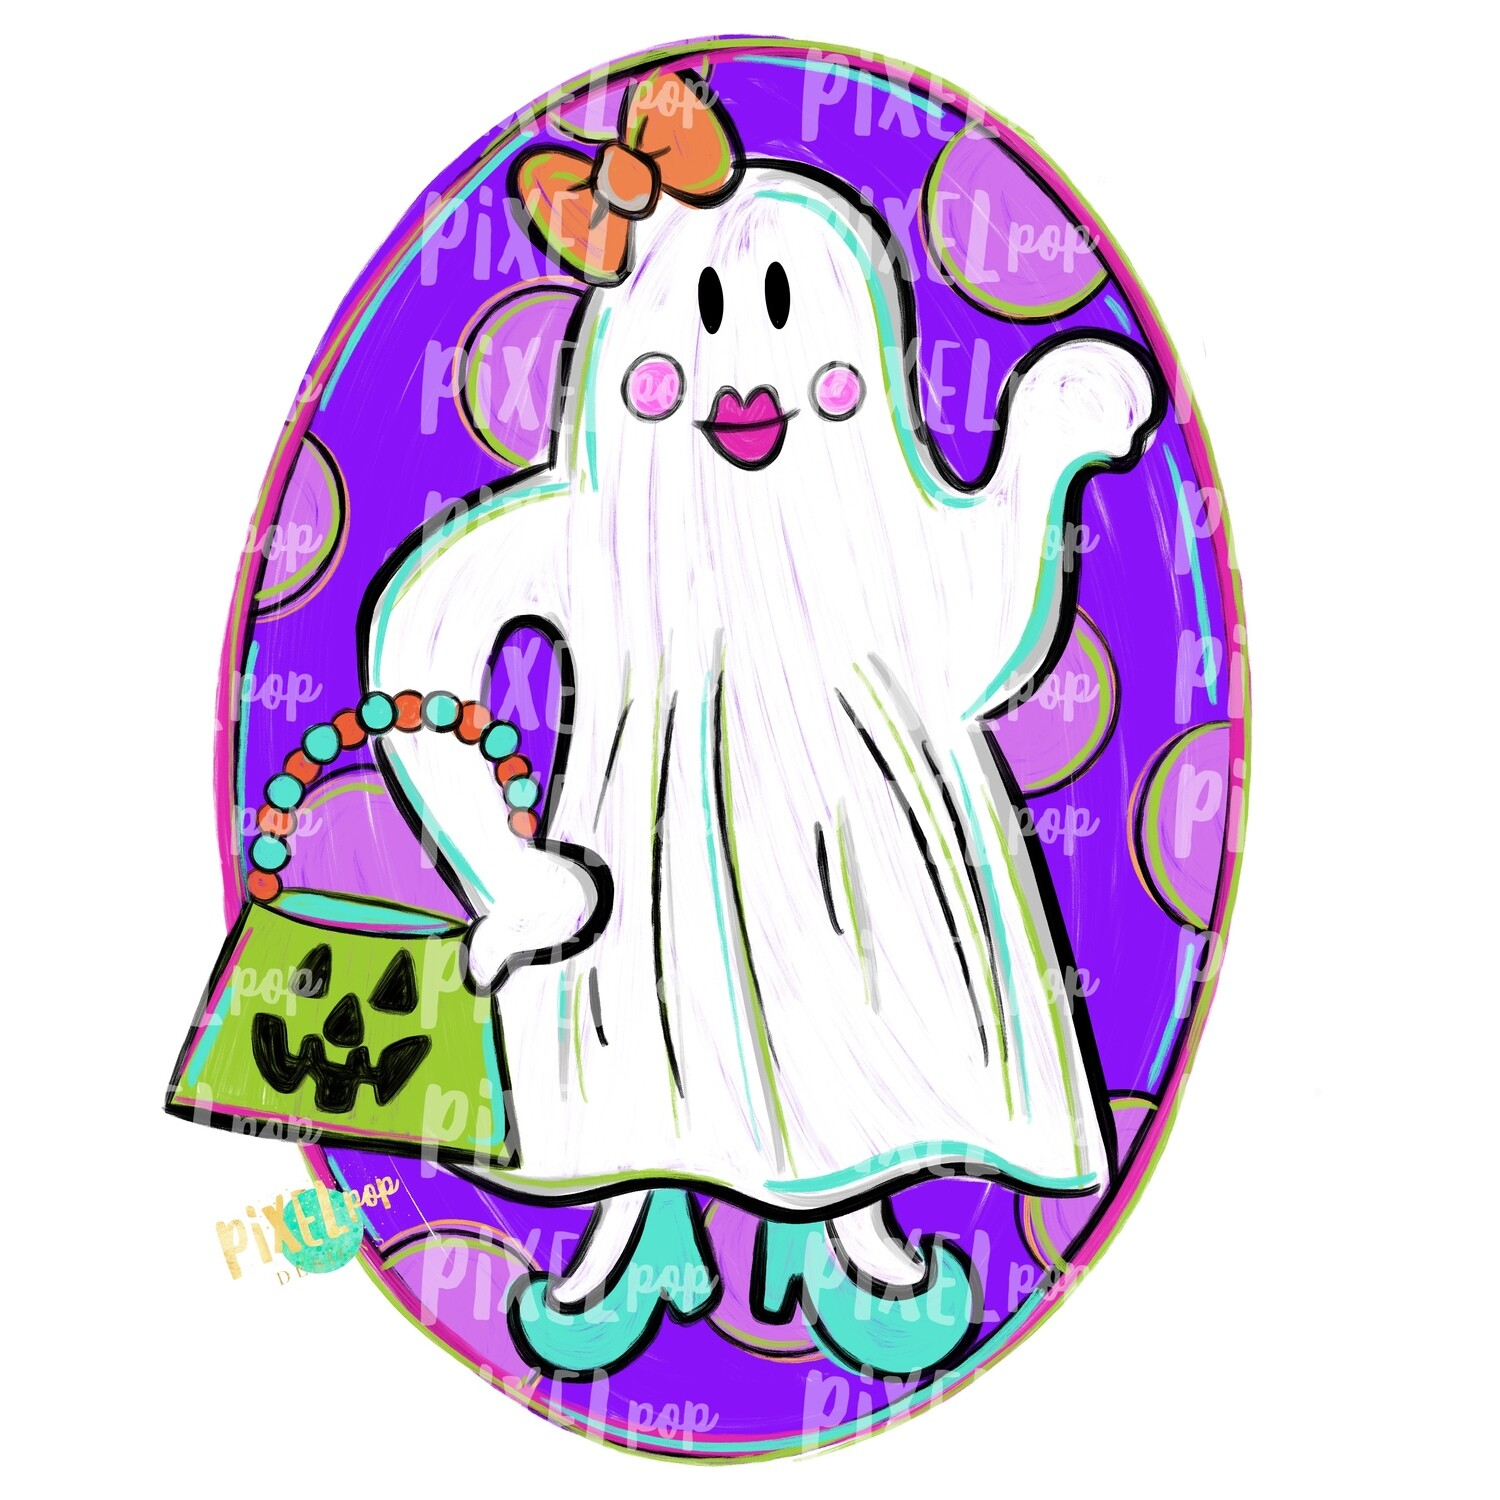 Sassy Ghost Girl PNG | Ghost Sublimation Design | Halloween Design | Hand Painted Sublimation PNG | Digital Art | Halloween Ghost Art Design